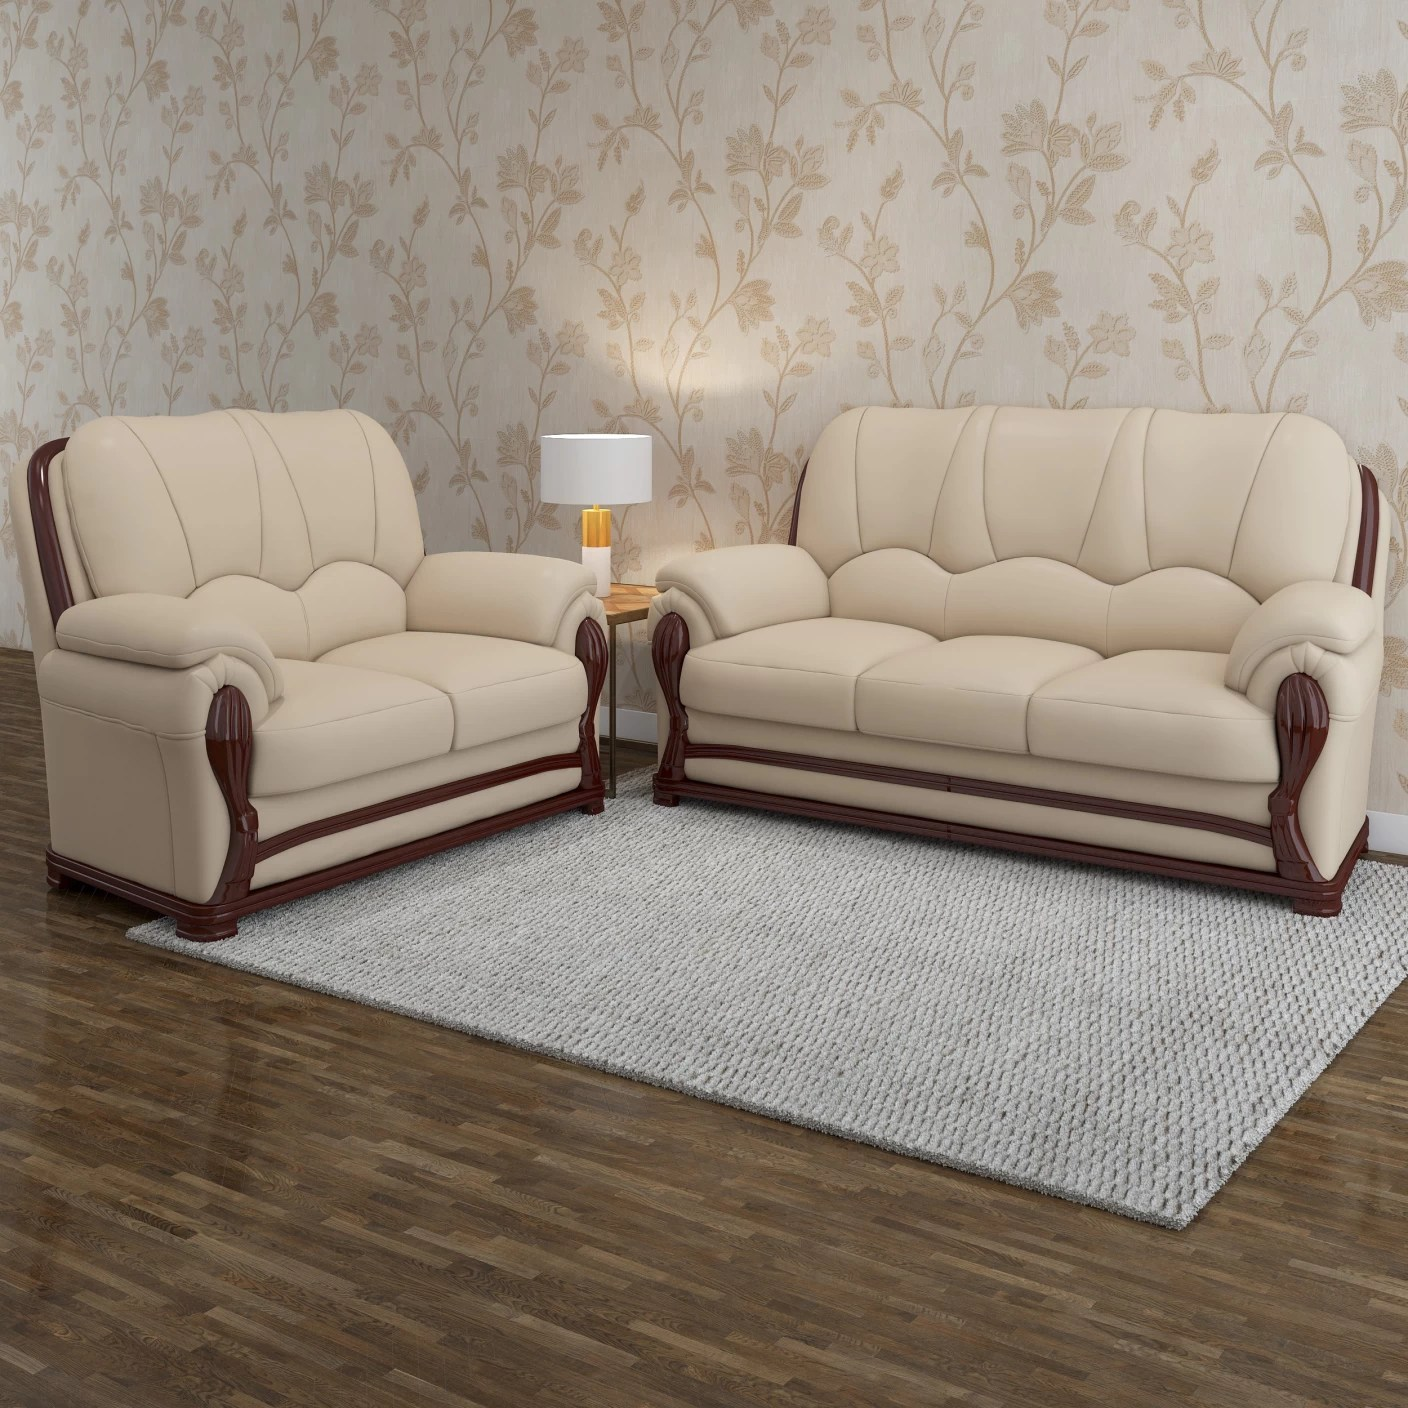 corner sofa set online india malaysian wood furniture vintage ivoria fabric 3 43 2 mahogany price in